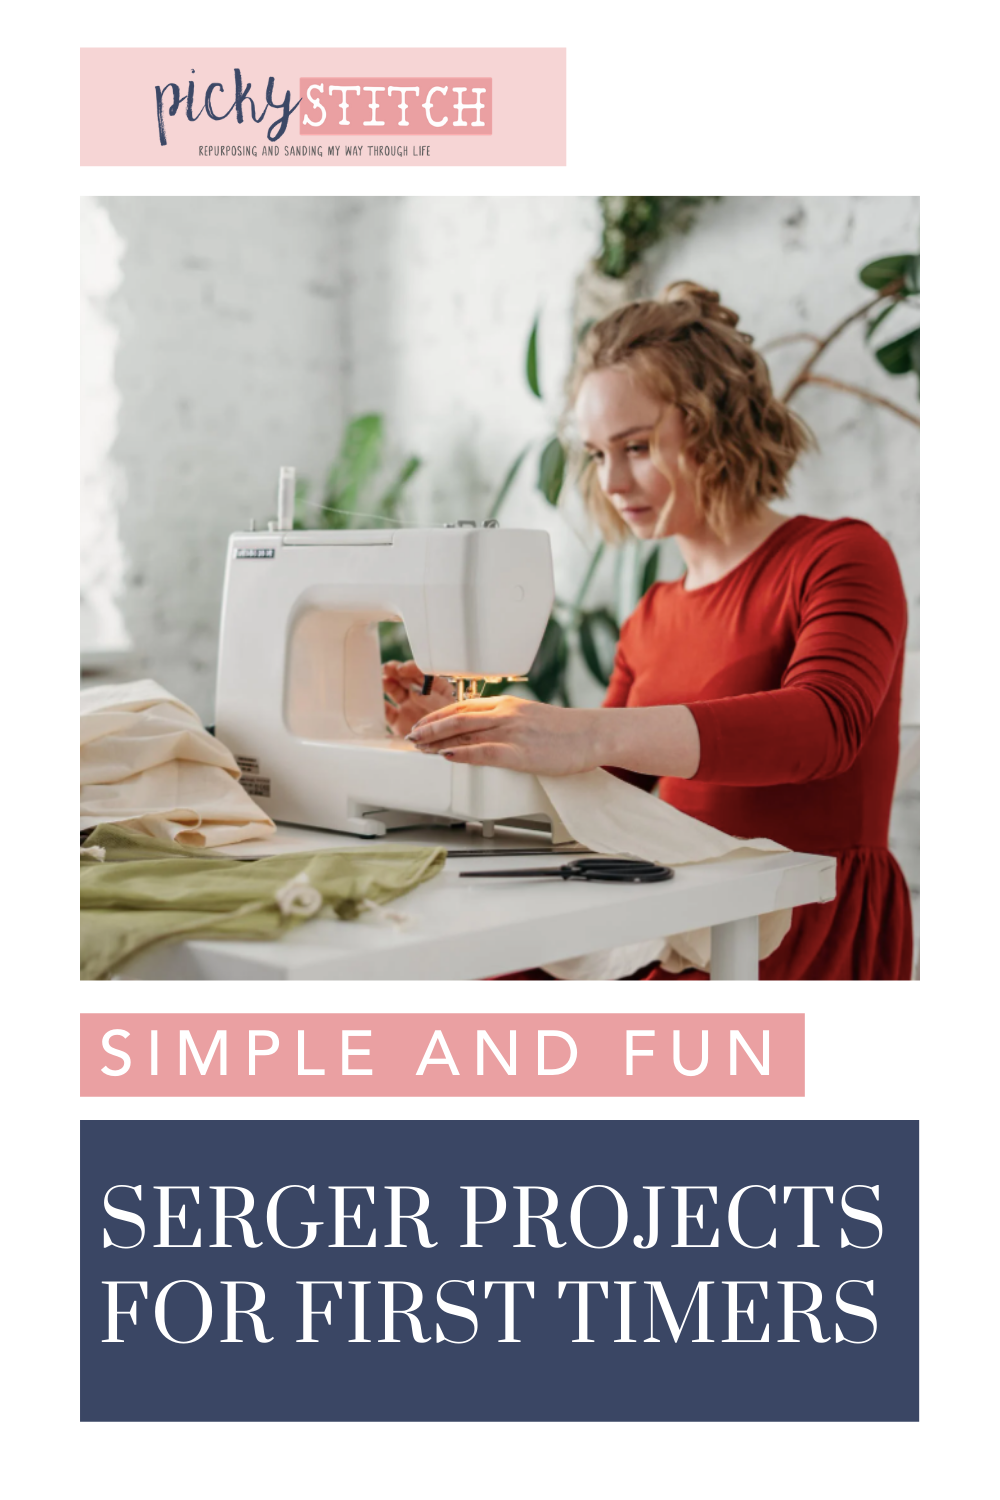 Pickystitch.com is the mecca of crafts! Find project ideas, tips, and more! Get started by learning easy ways to get used to your new serger!